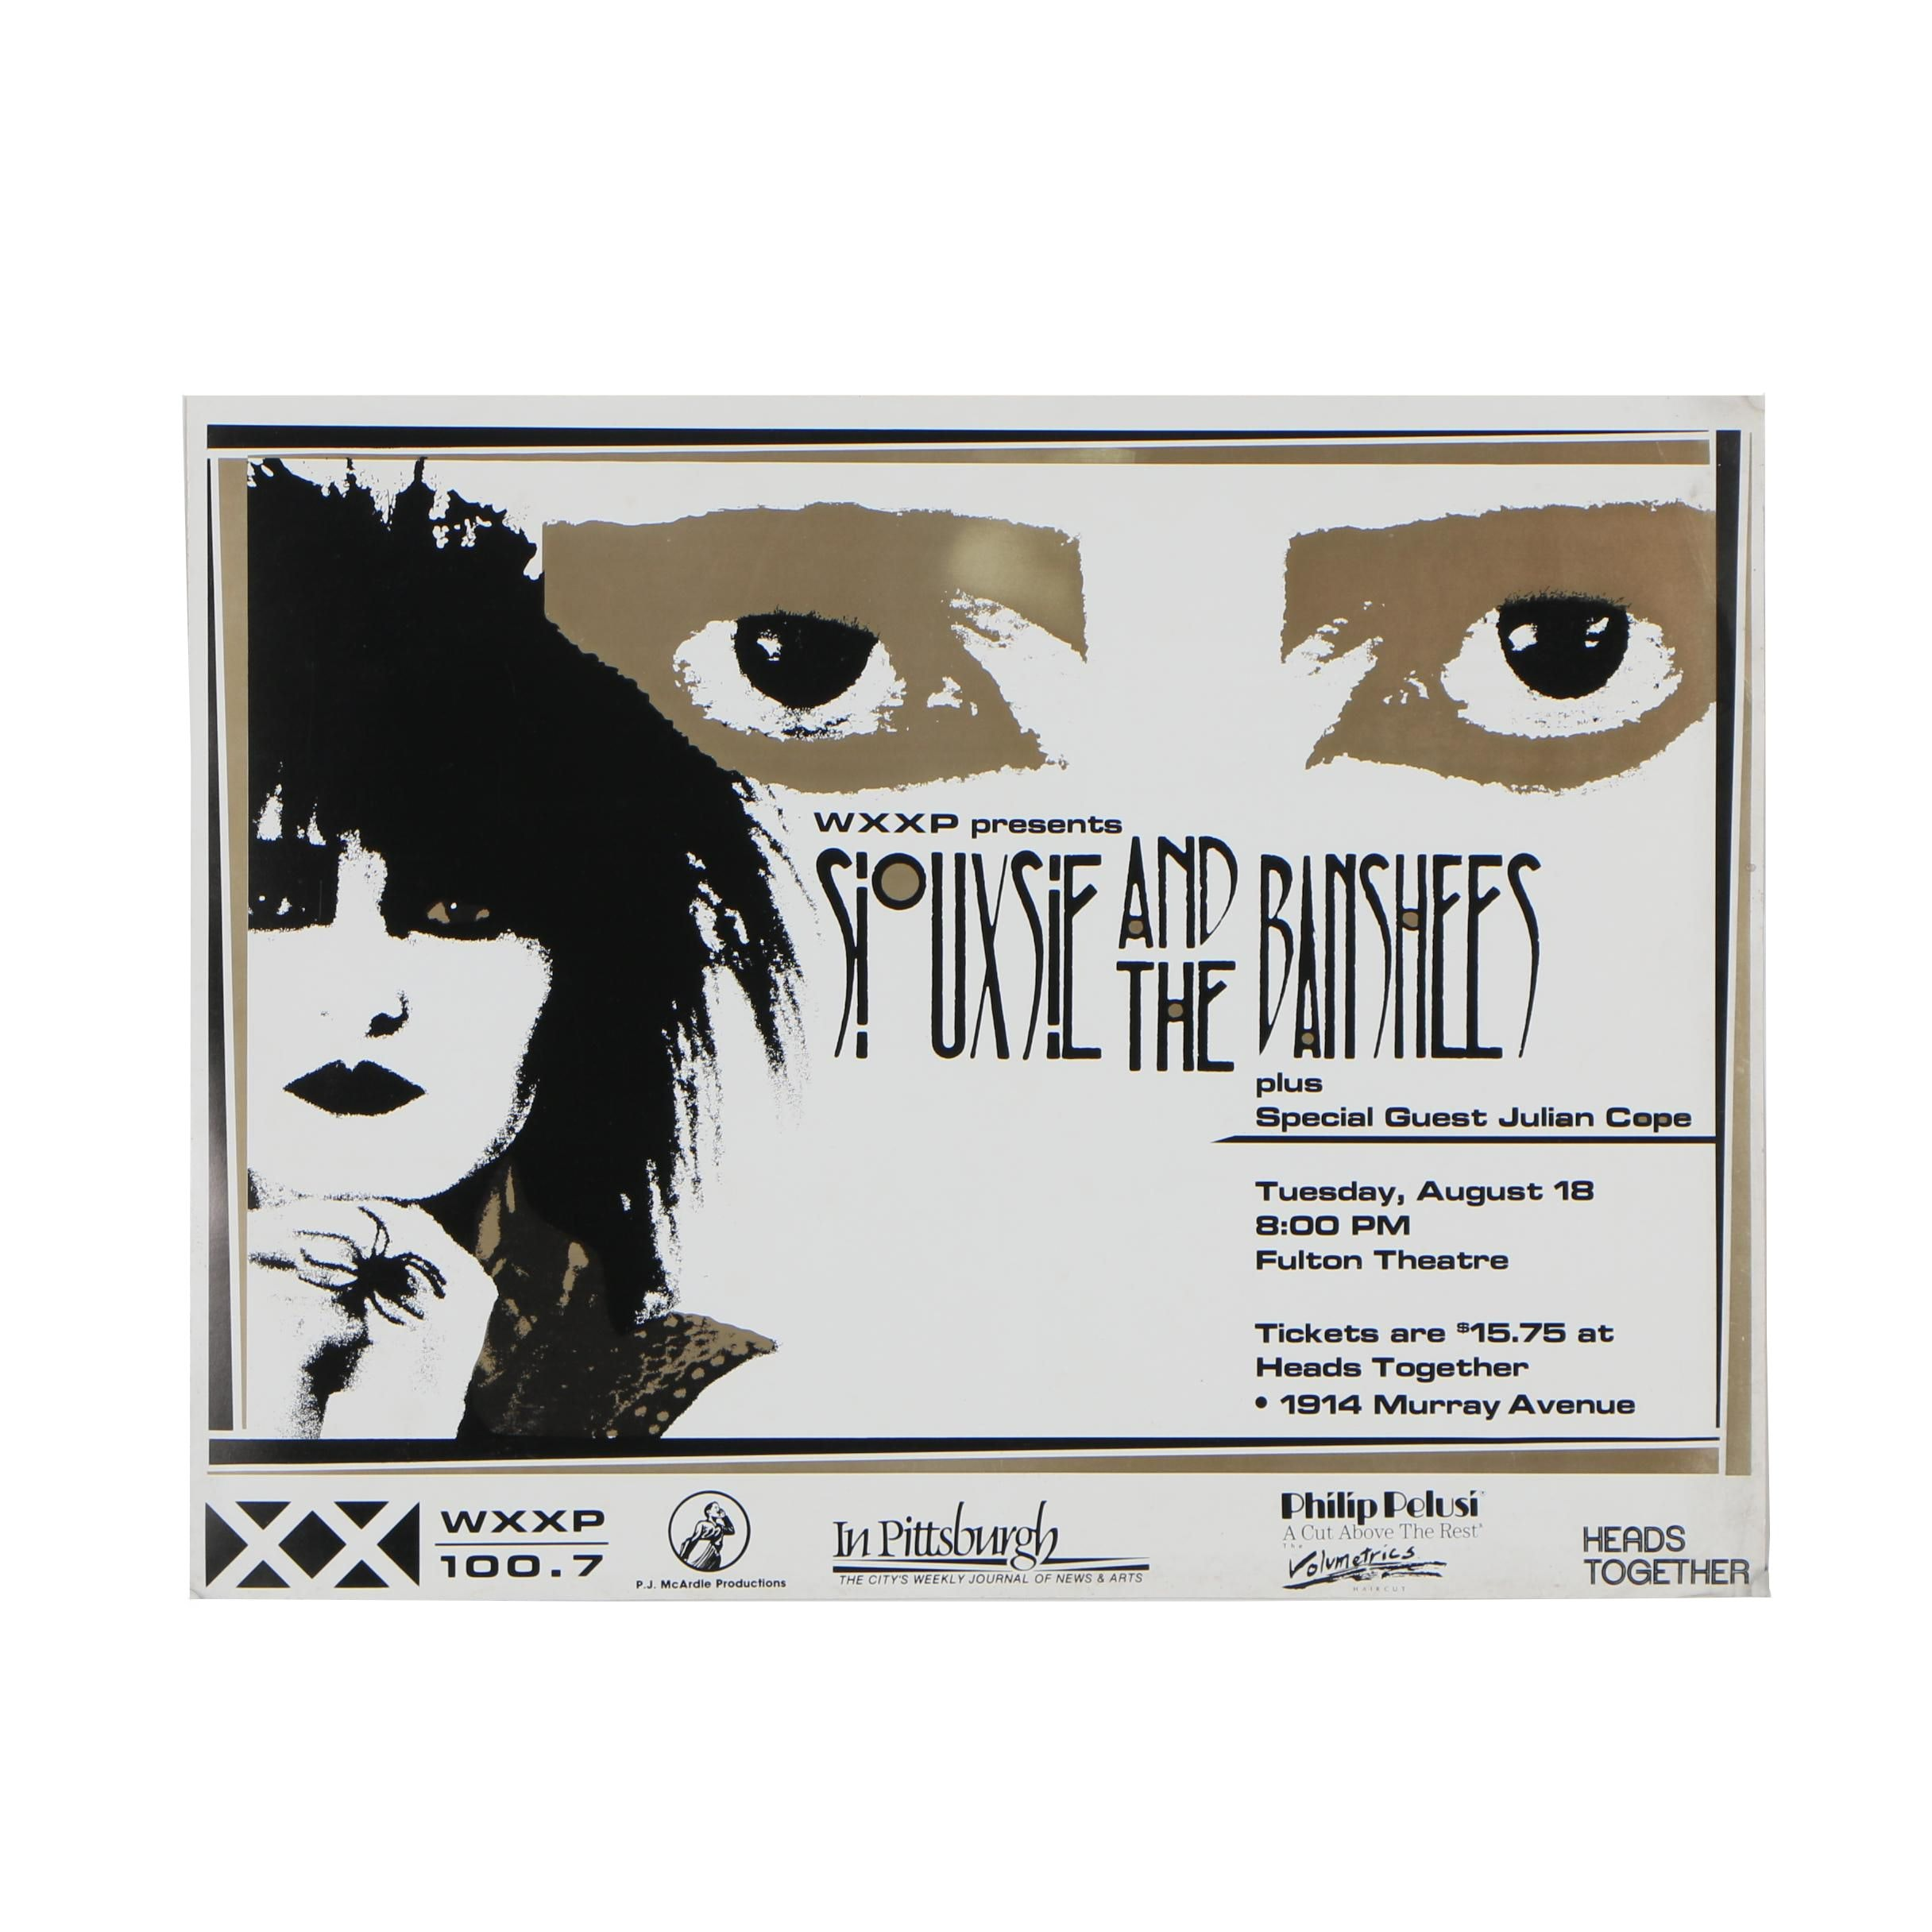 Siouxsie and the Banshees Concert Poster, 1987